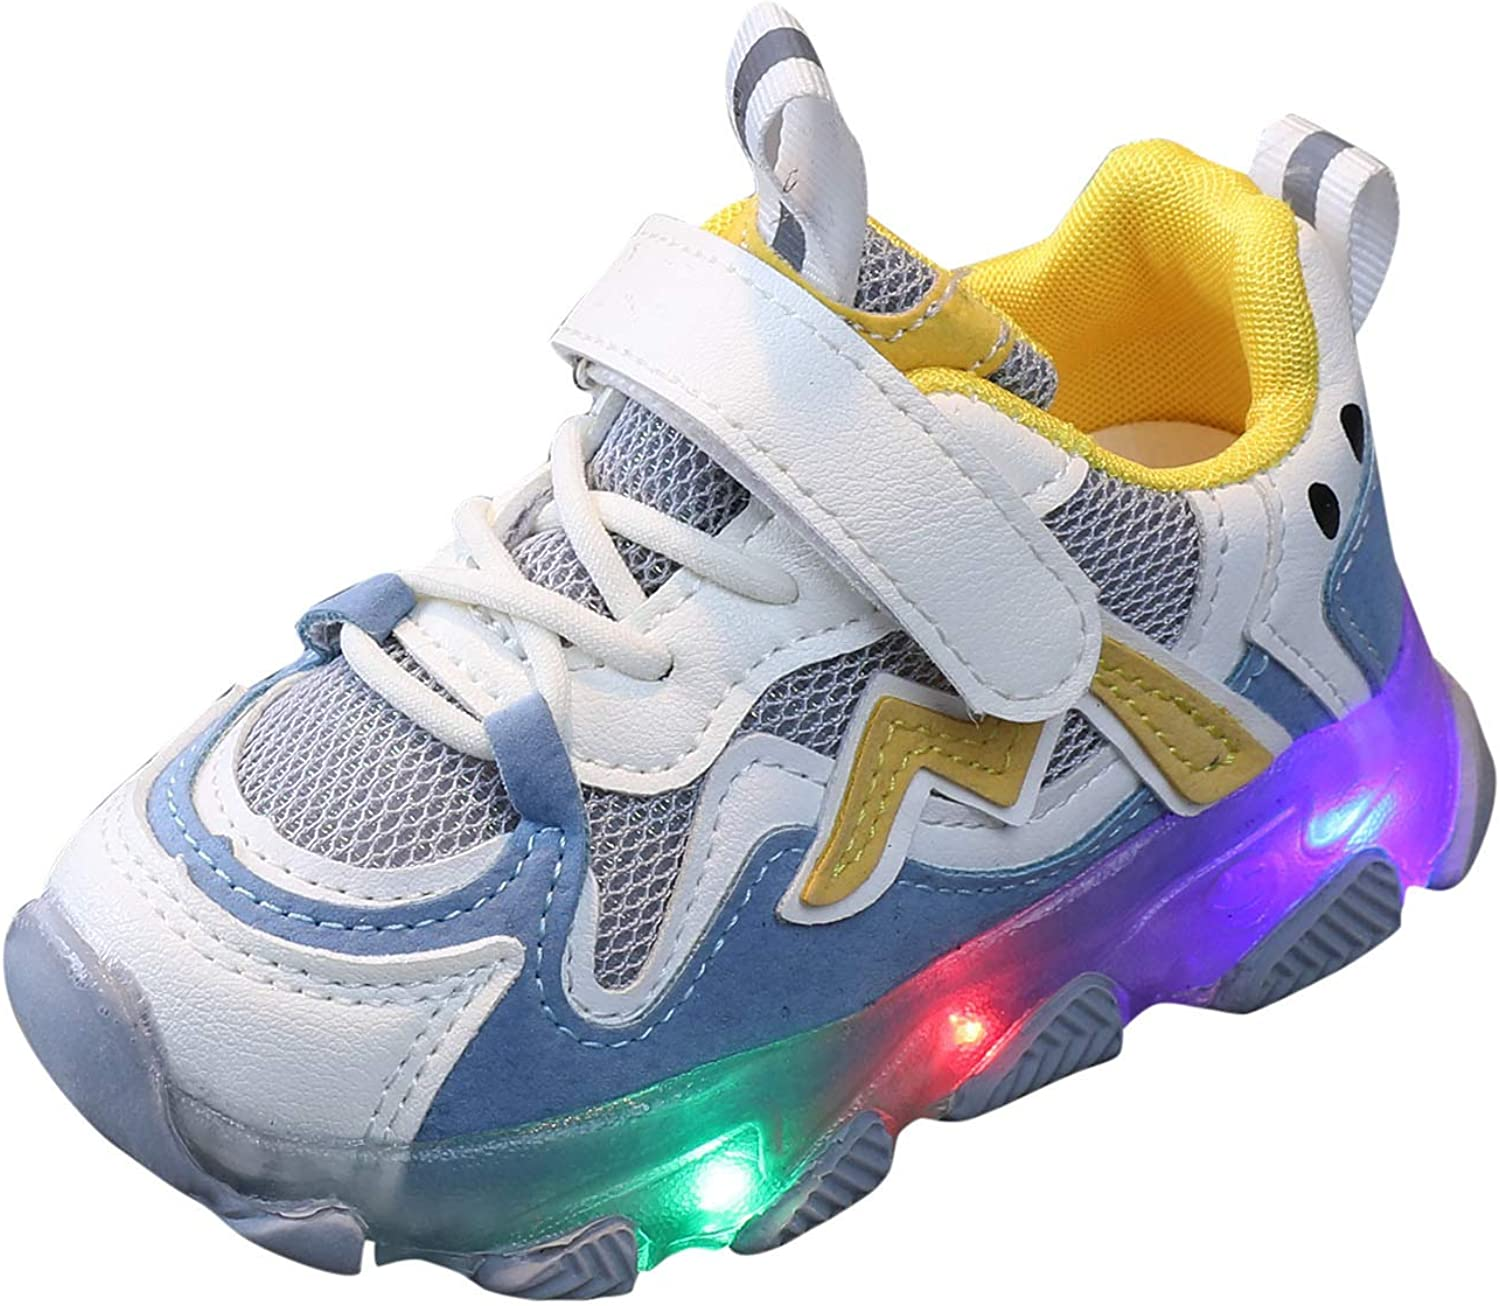 Phoenix Mall Jchen Boys Girls Mesh Breathable LED Light Up Free shipping on posting reviews Shoes Hook Kids